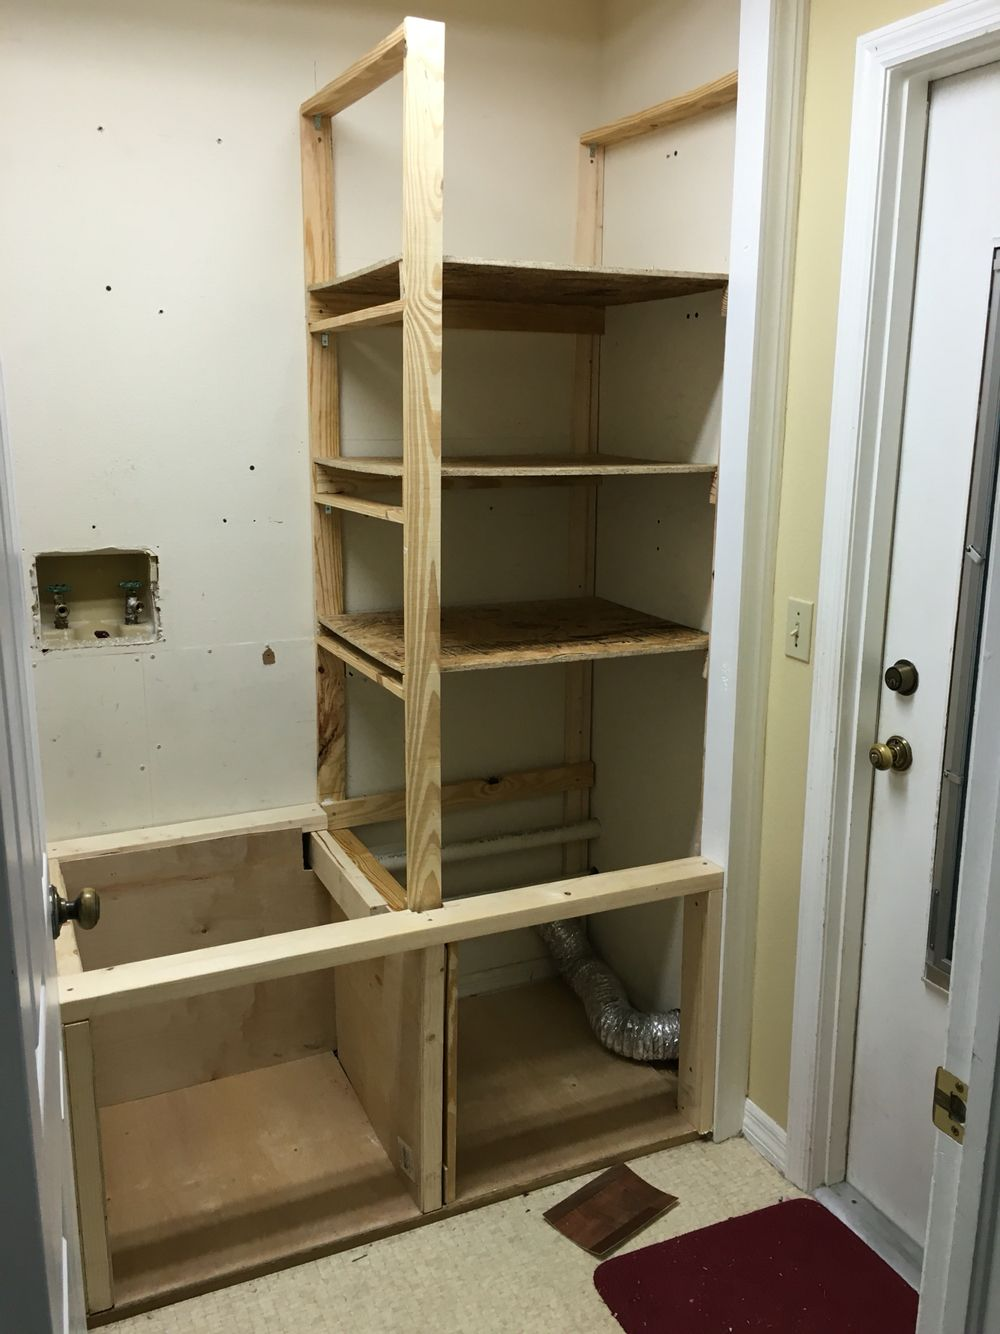 Making the shelves up the side